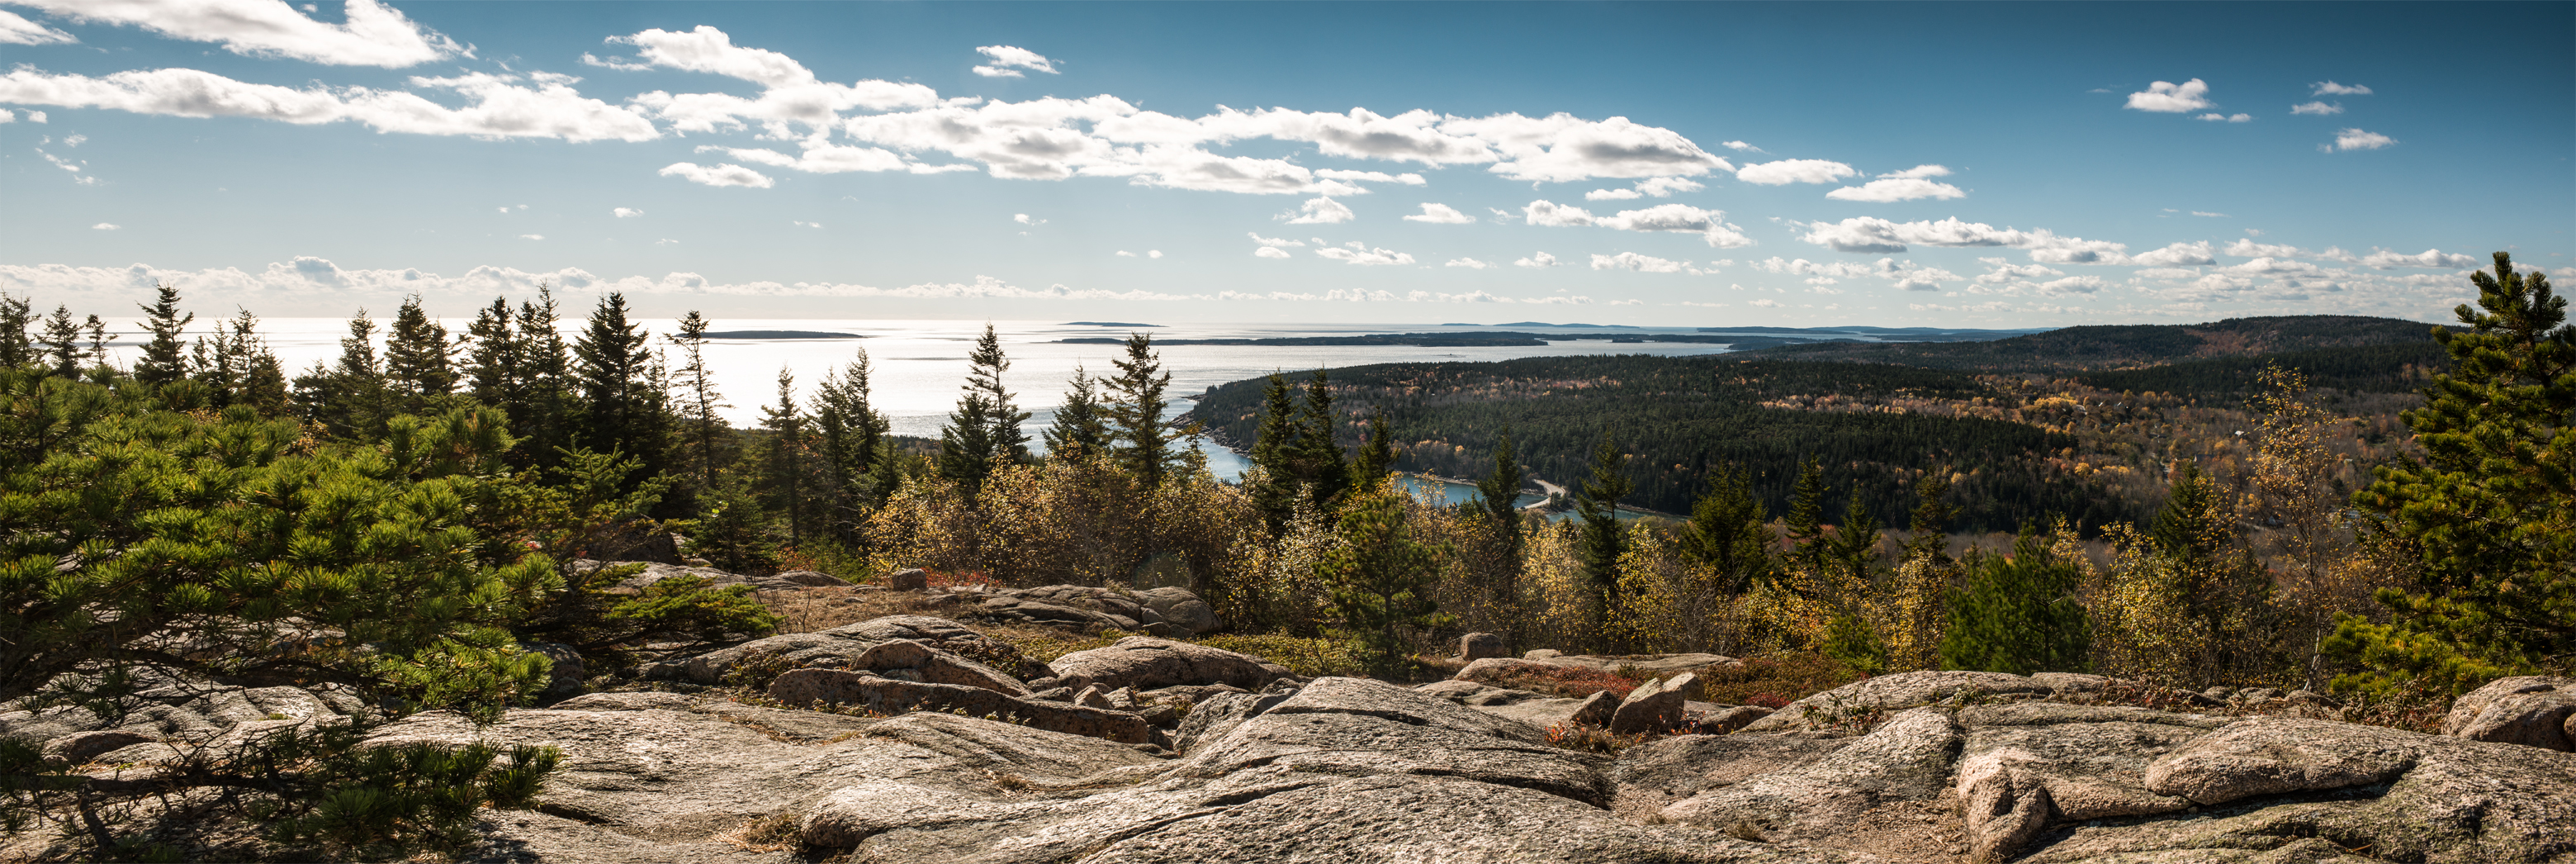 Photographing landscapes on a road trip from New York to Salem Massachusetts and acadia national park in maine_08